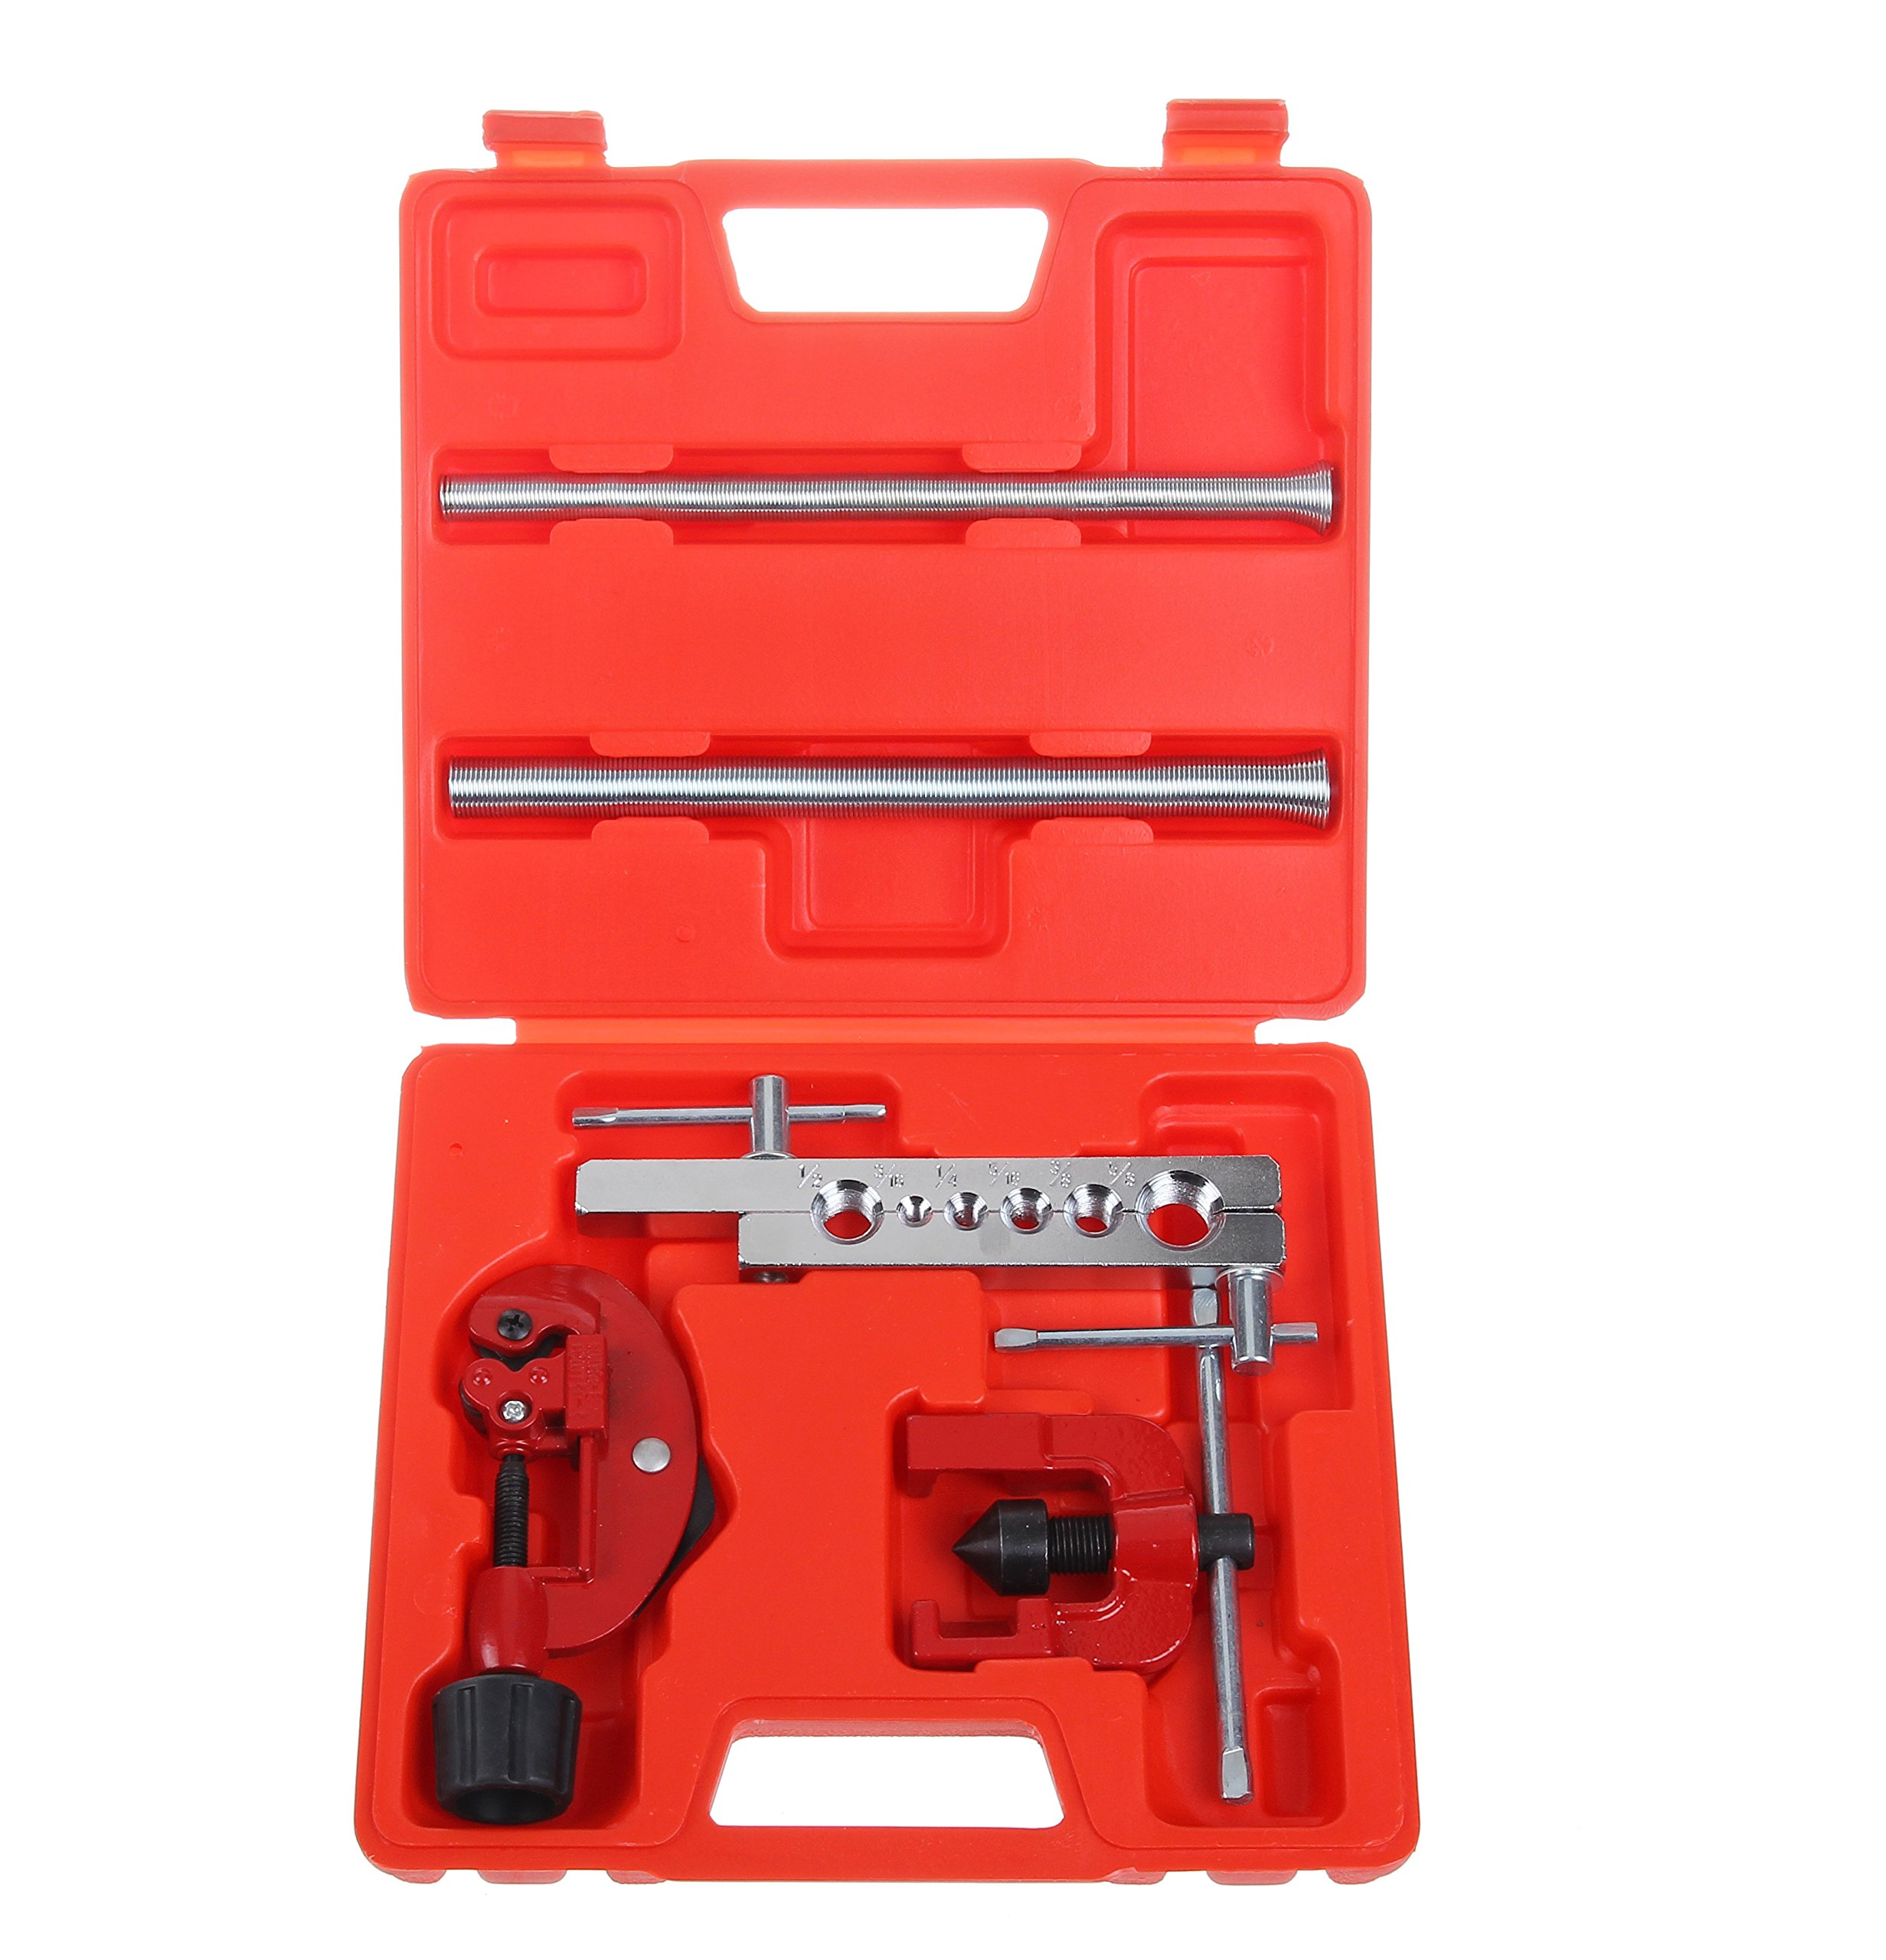 Shankly Flaring Tool Kit (7 Piece), Professional Tube Cutter & Flaring Tool Set